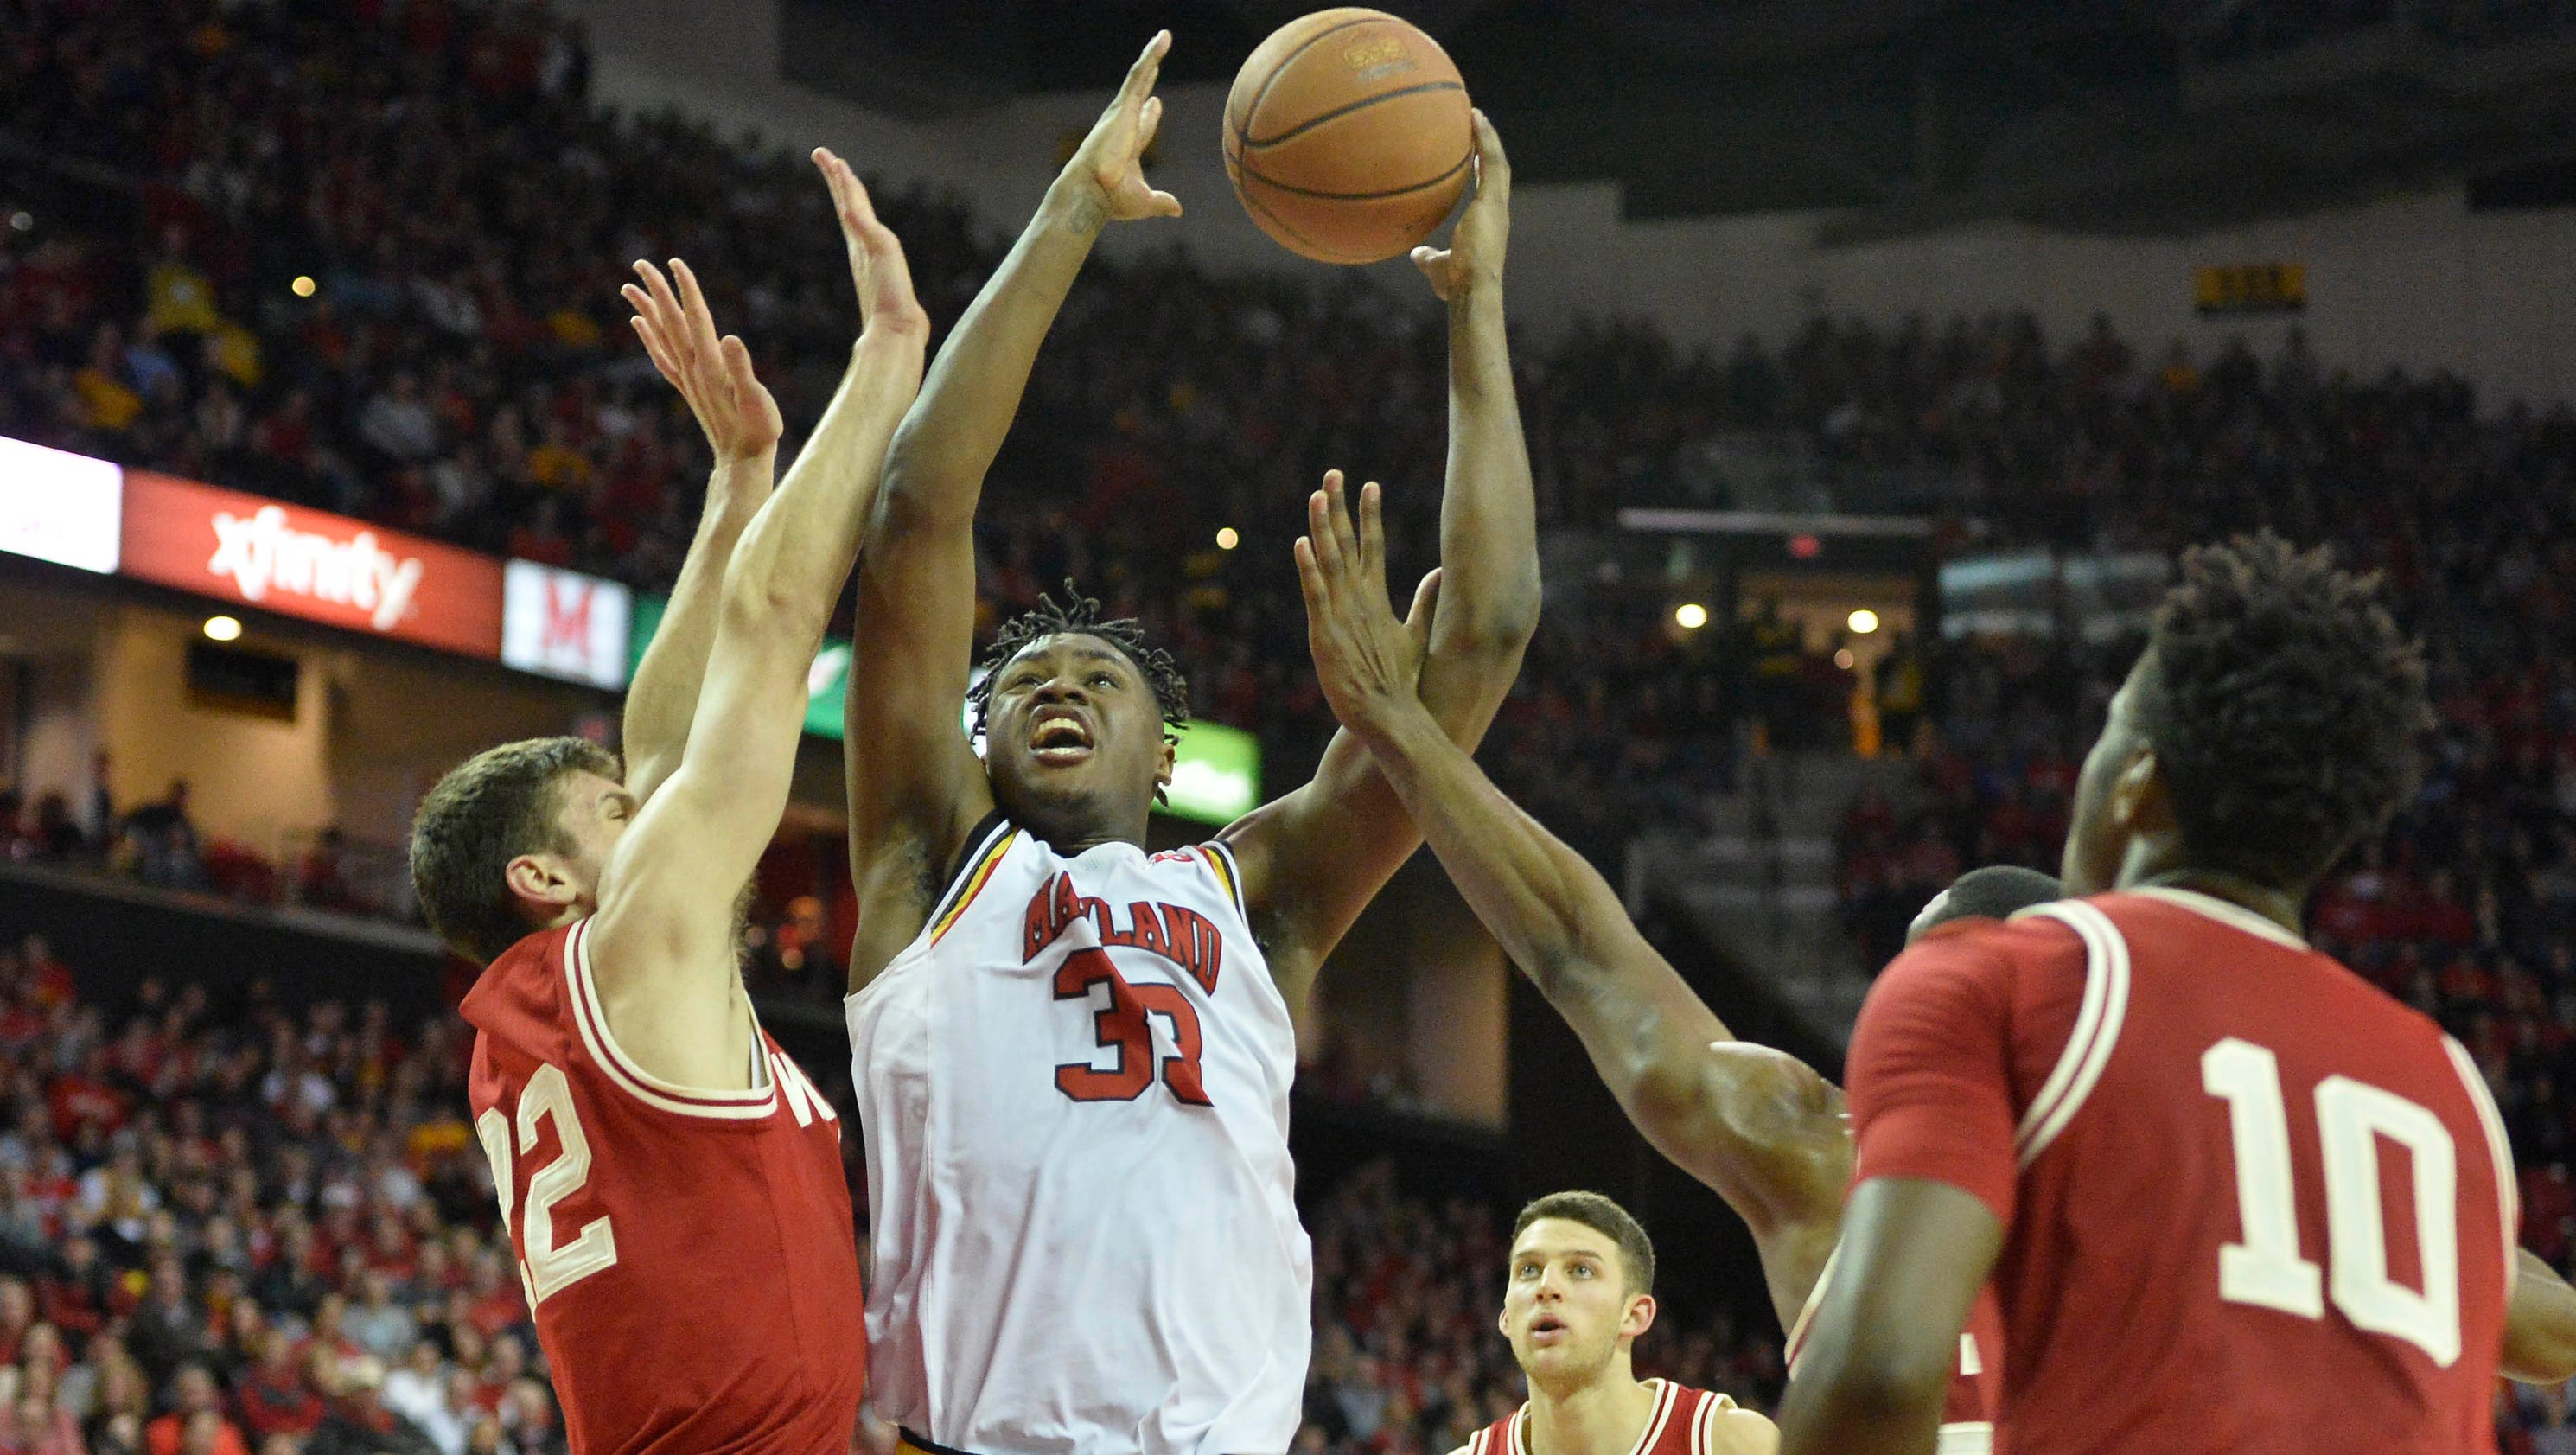 flagrant foul in basketball This is a type of foul in basketball that is called when the contact is believed to be excessive, whether it is intentional or unintentional the team that the flagrant foul was committed on is given two free throws and possession of the ball.